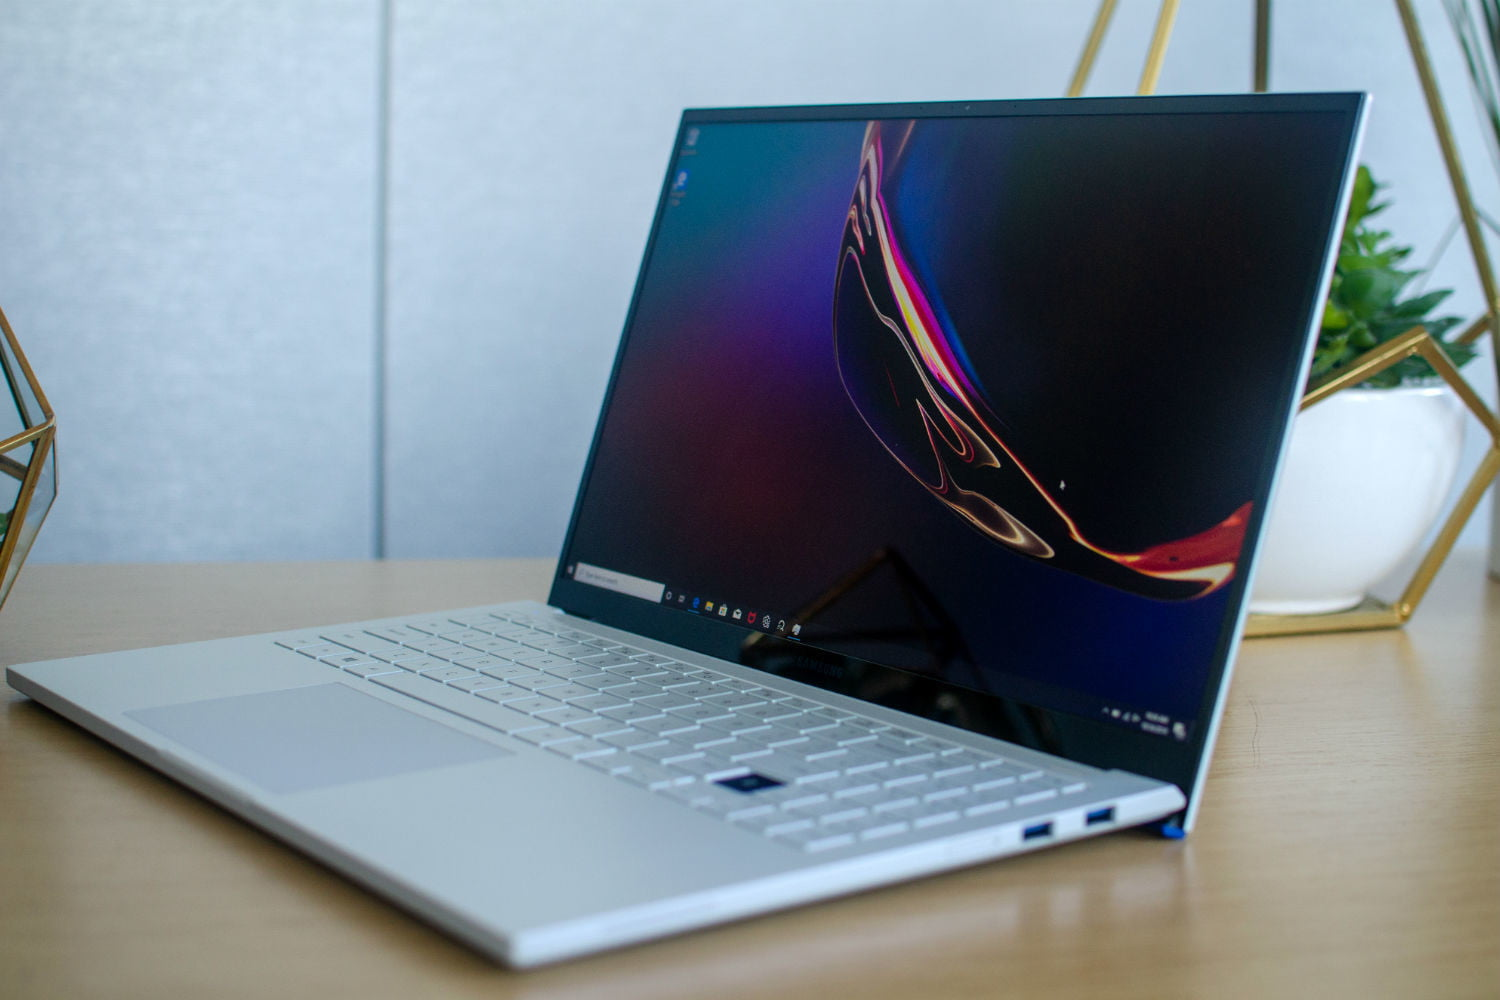 Samsung's Galaxy Book Ion Hands-on Review: Affordable Laptop, Great Display    Digital Trends